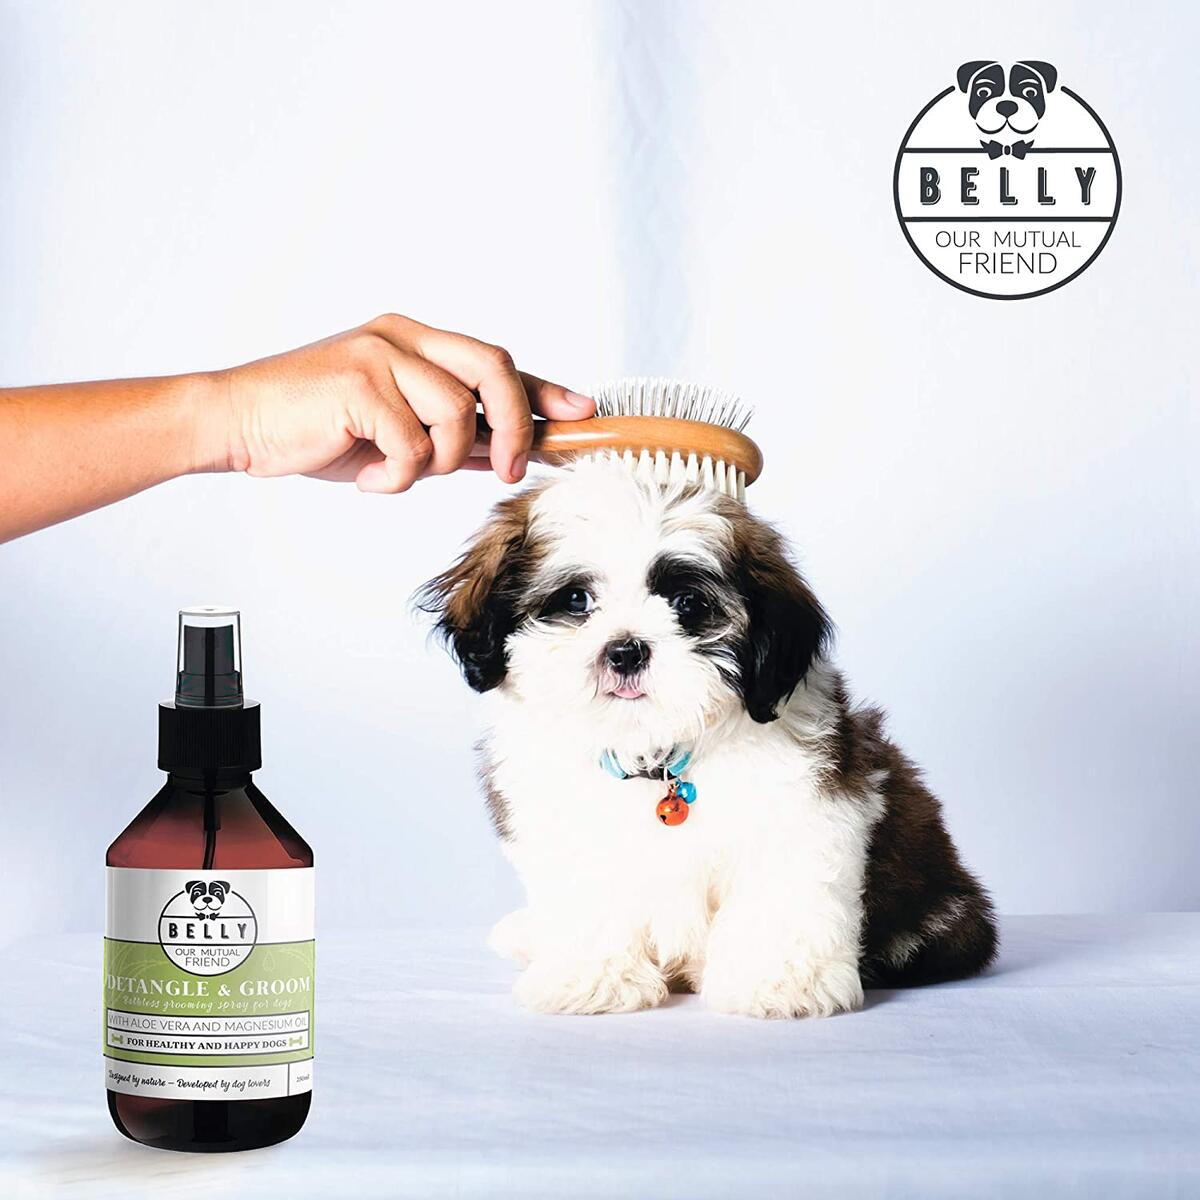 Dog Detangler Spray - Natural Detangle and Groom I 8.45 Fl Oz I Natural and Vegan Dog Grooming Spray I for Healthy and Happy Dogs I Contains Aloe Vera and Magnesium Oil I Dog Conditioner